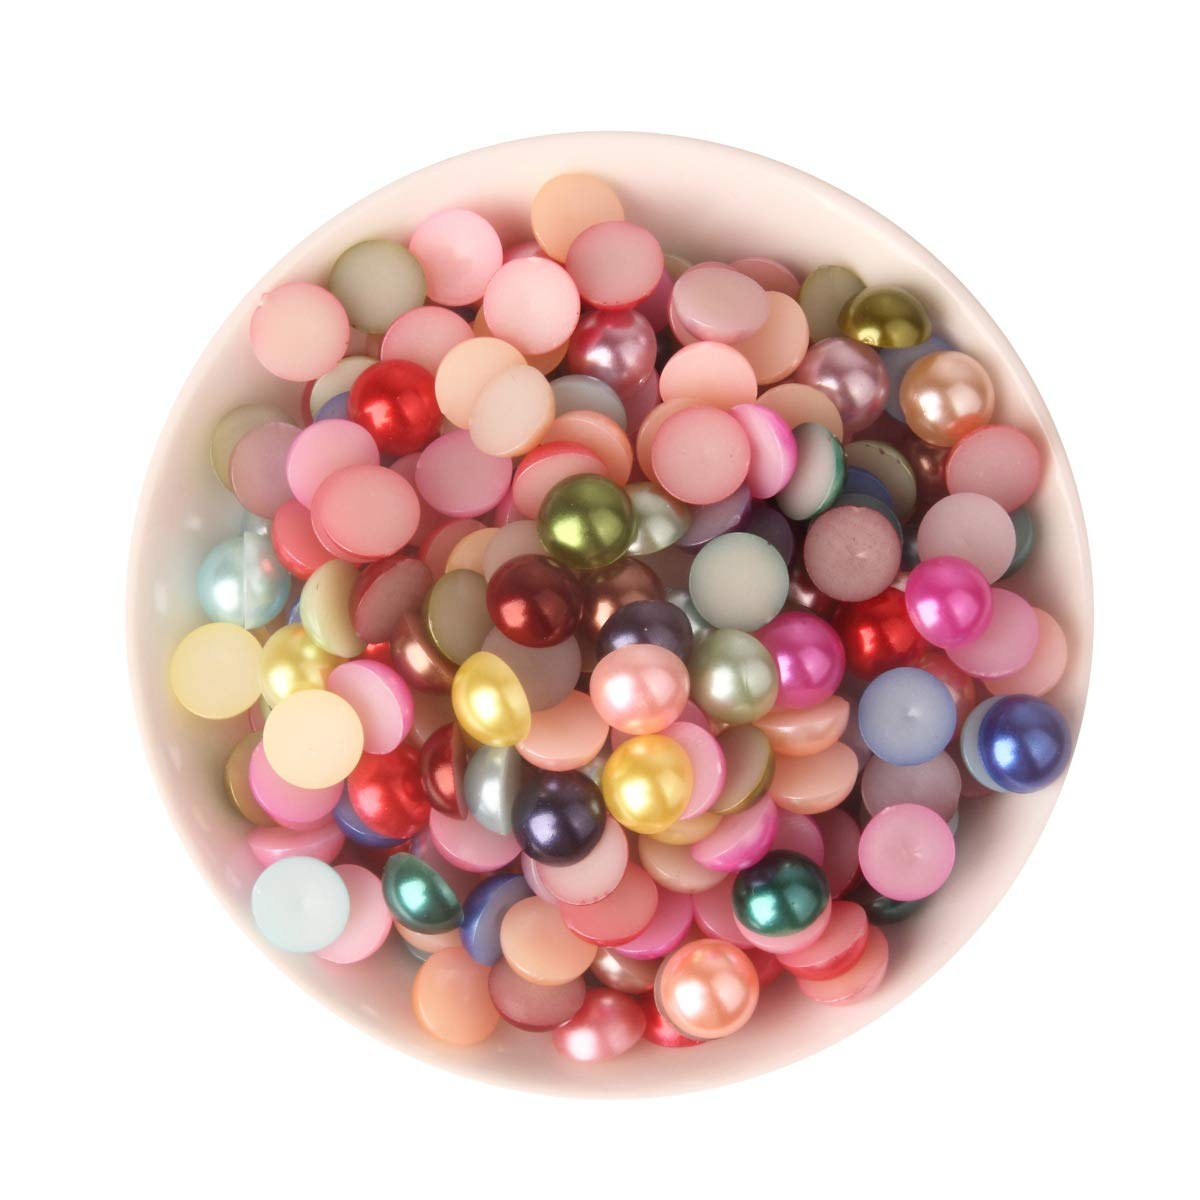 1100pcs ABS Gradient Imitation Pearls Half Round Pearls Assorted Mixed Sizes 3//4//5//6//8mm Flatback Pearl Beads DIY Material Style 1